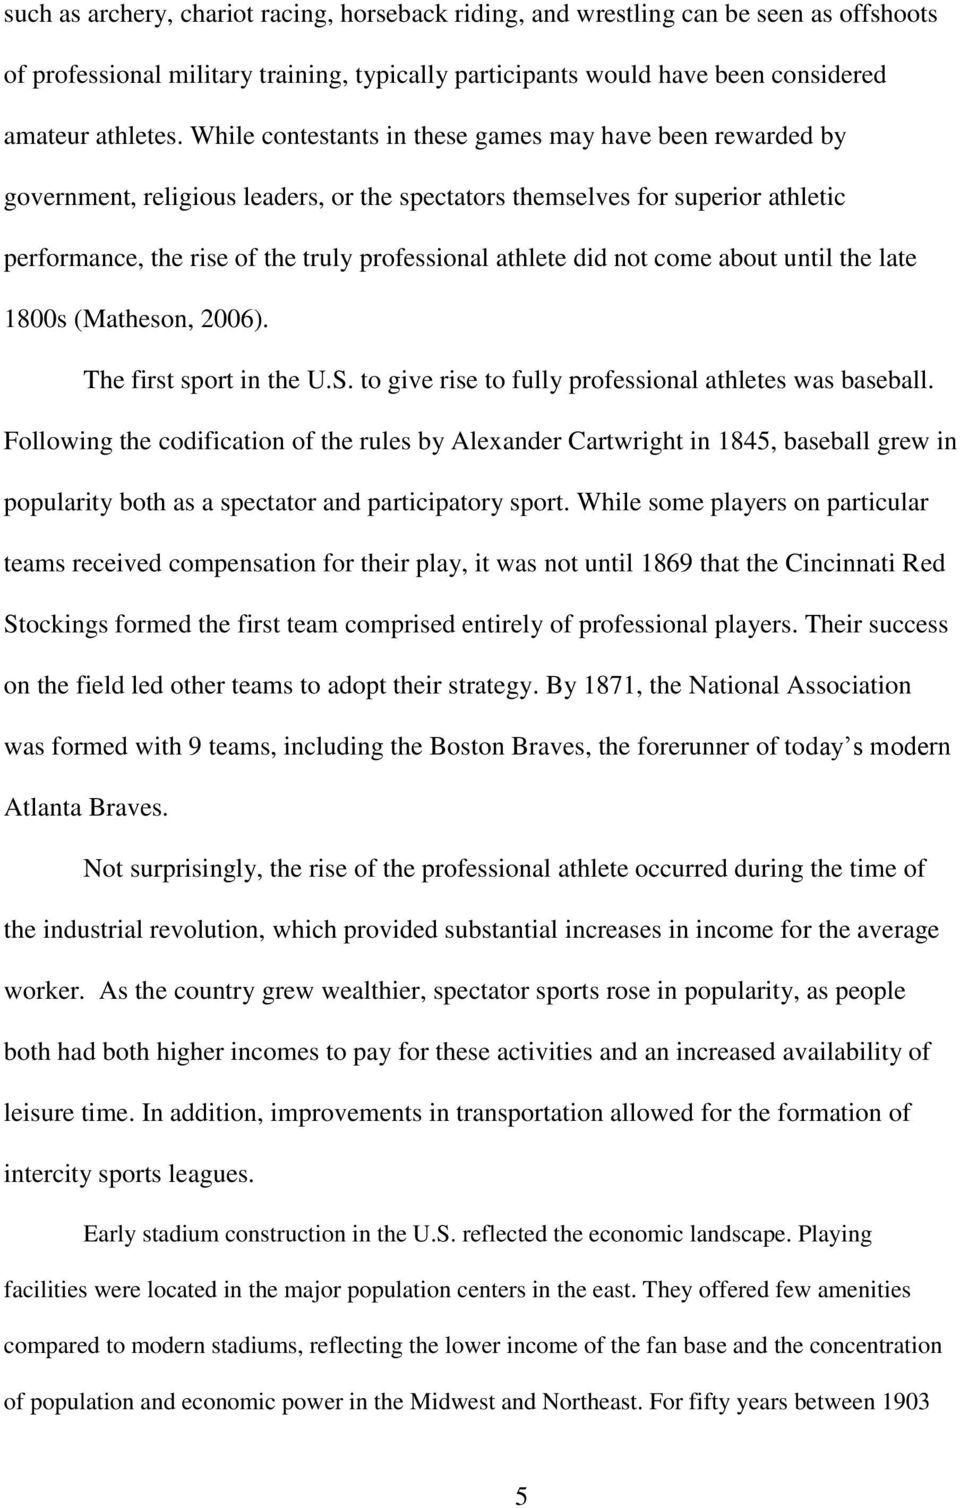 did not come about until the late 1800s (Matheson, 2006). The first sport in the U.S. to give rise to fully professional athletes was baseball.